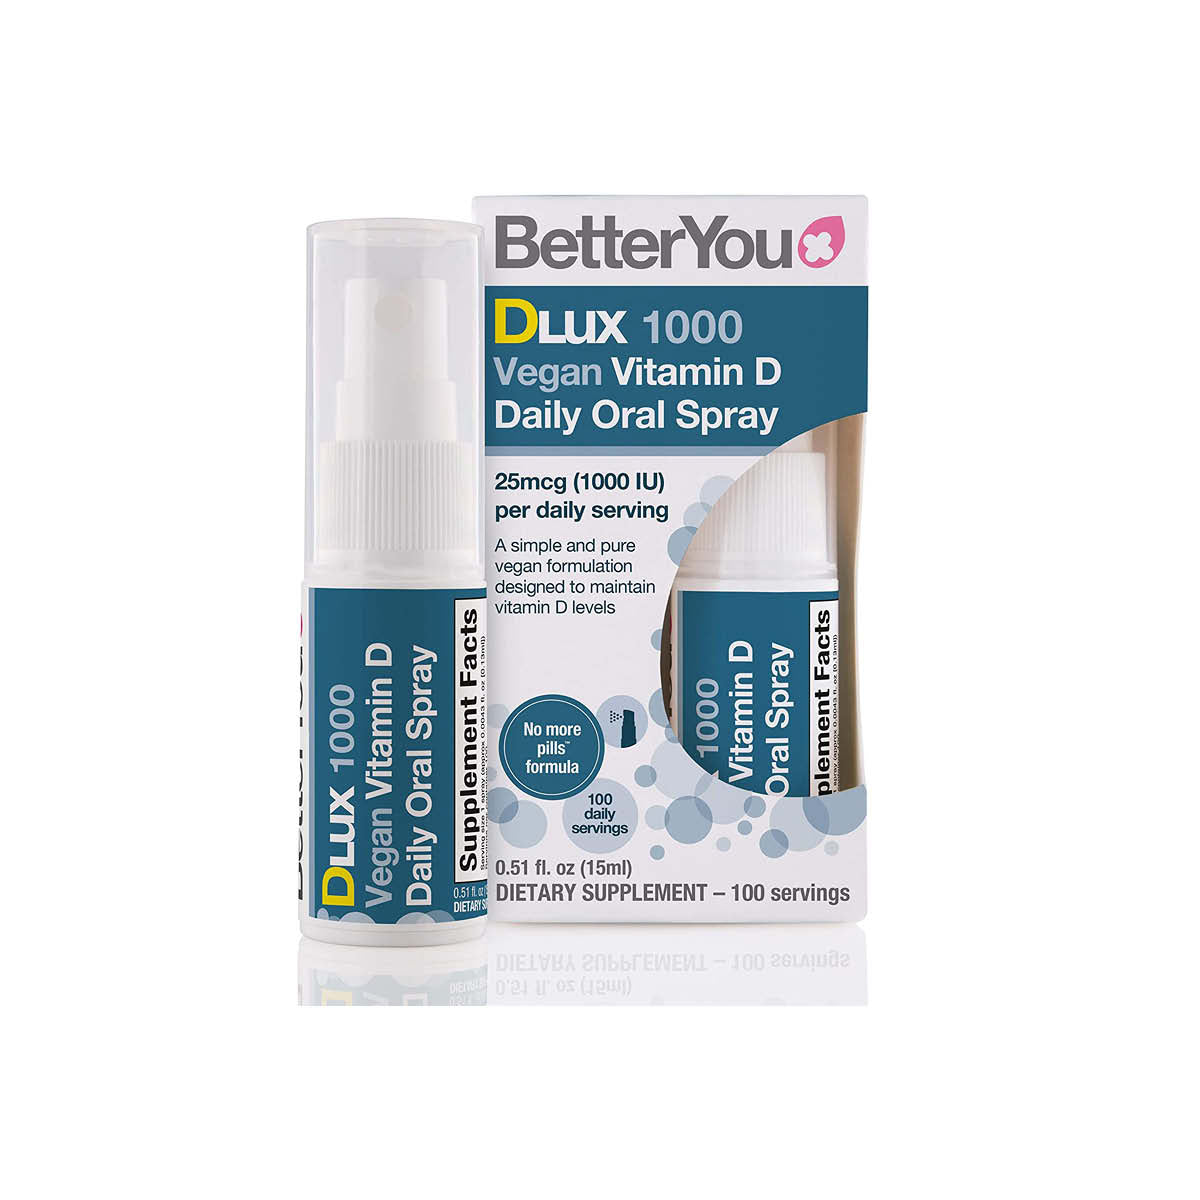 BetterYou DLux Vegan Vit D Daily Oral Spray